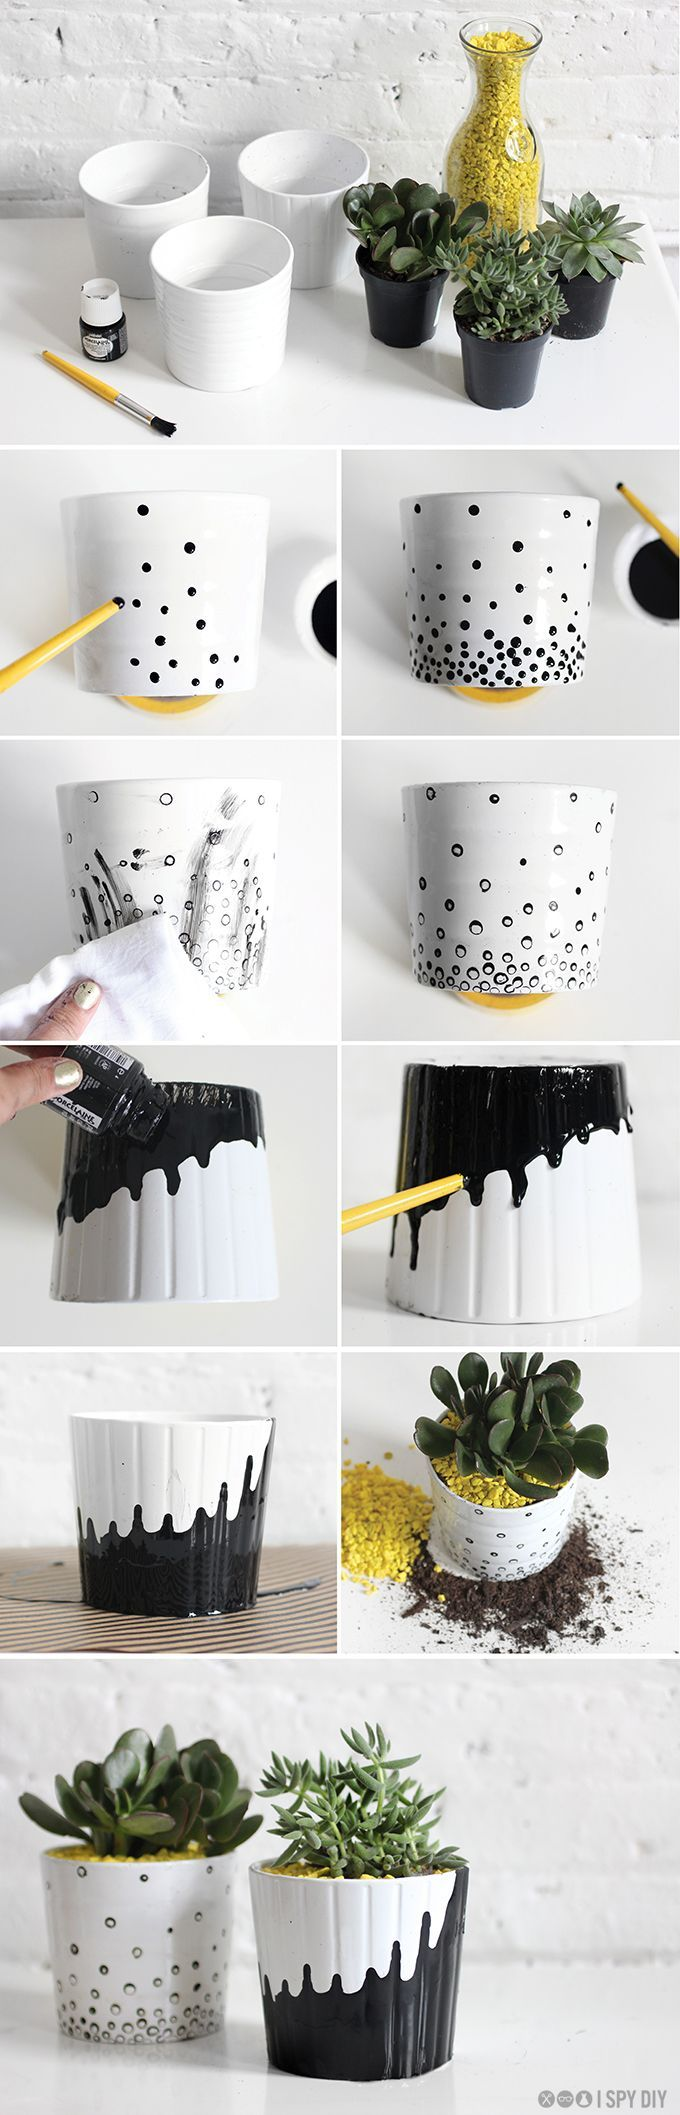 Best Terracotta Plant Pots Ideas On Pinterest Painted Plant - Diy two tone painted pots